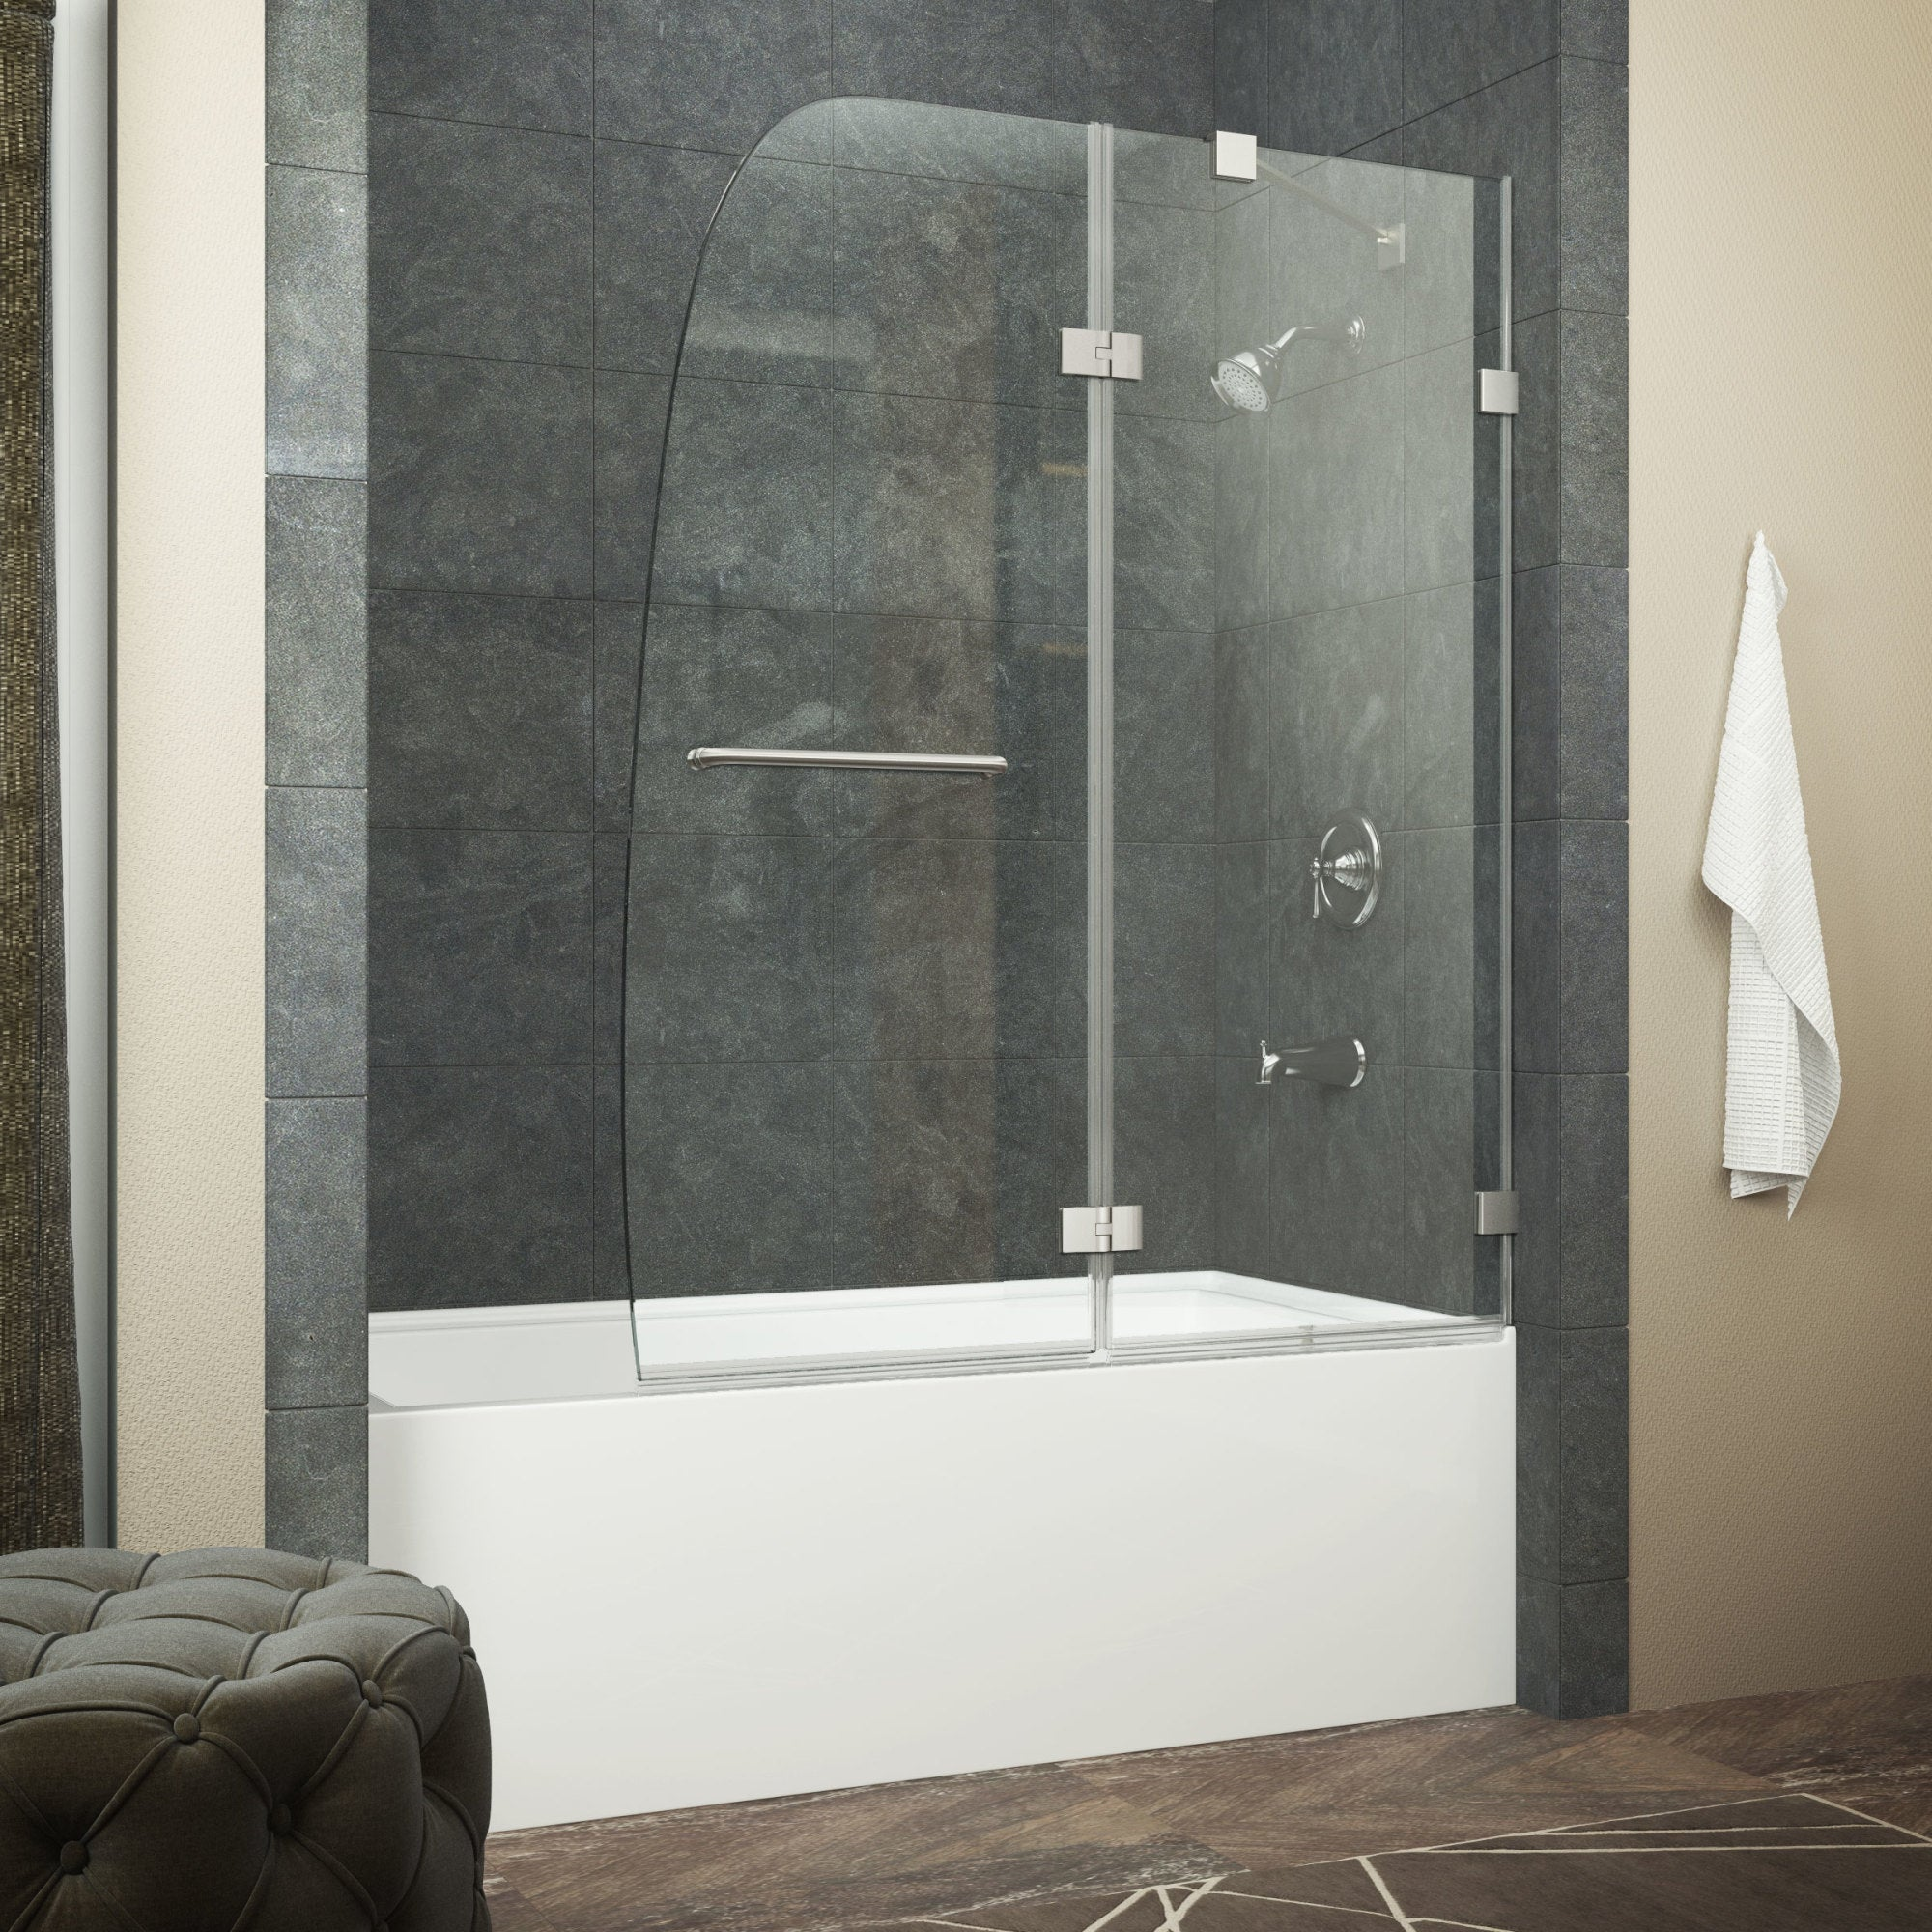 Shop Anzzi Herald Series 48 In By 58 In Frameless Hinged Tub Door